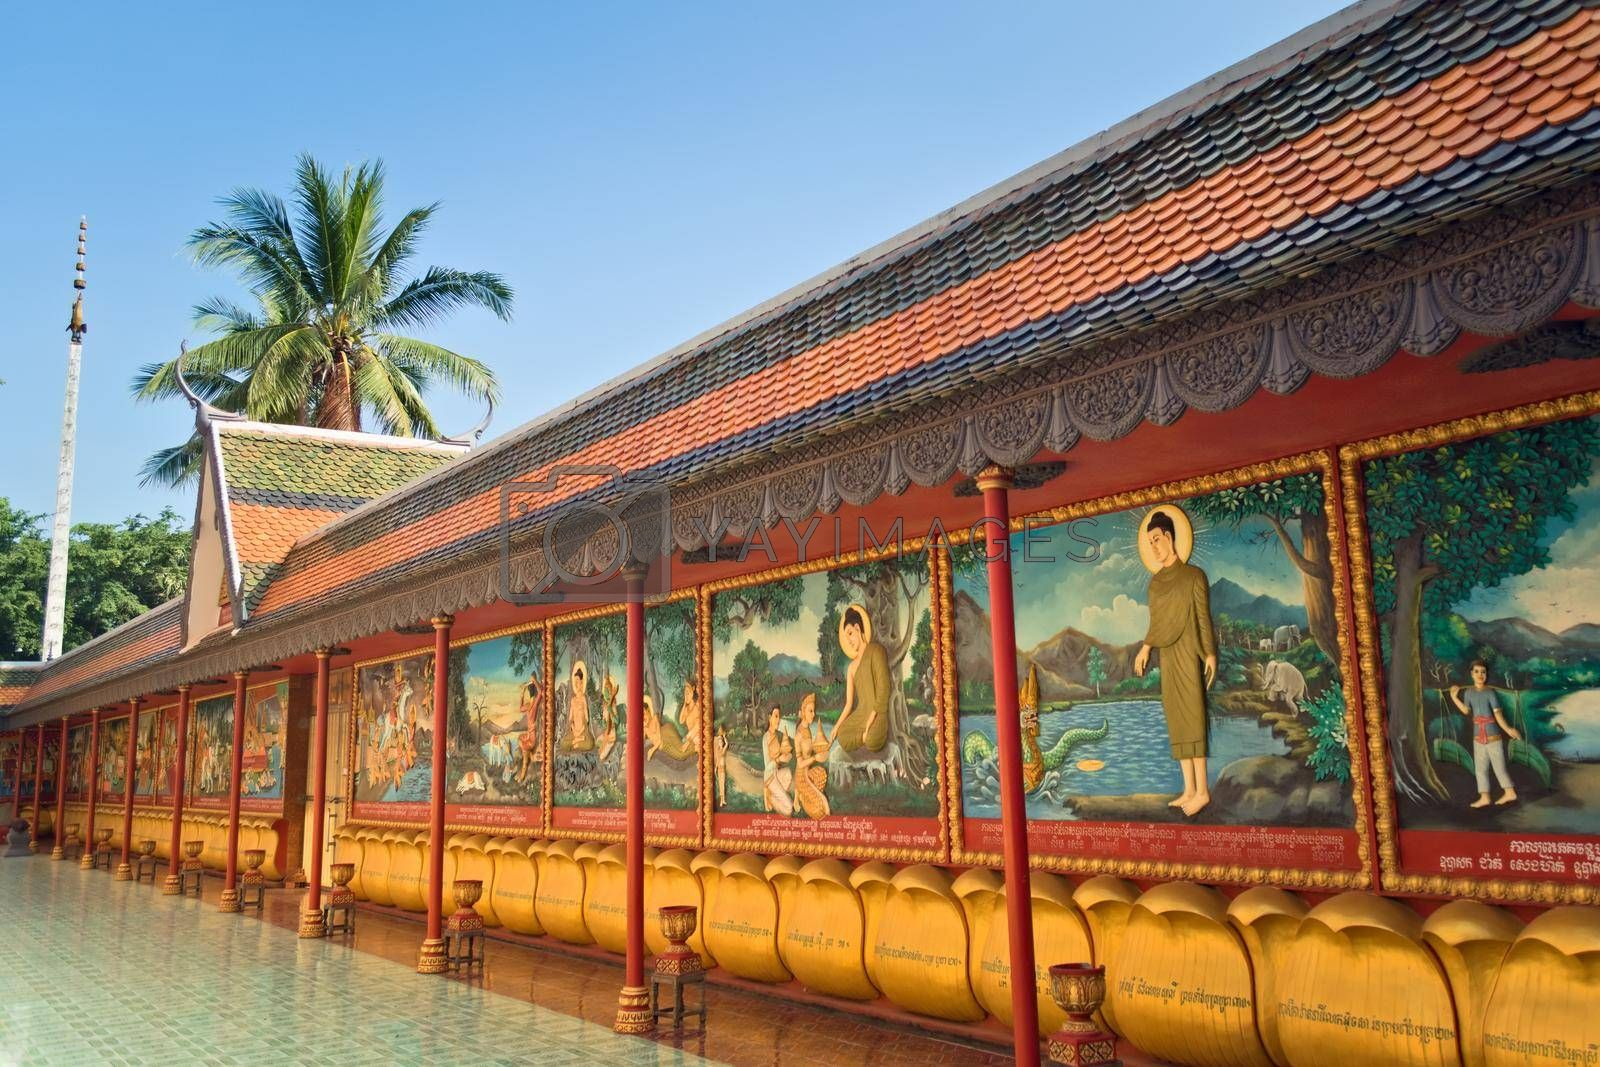 Royalty free image of 2019-11-16 / Siem Reap, Cambodia - Colorful mural in Wat Preah Prom Rath, a buddhist complex built in the 13th century. by hernan_hyper